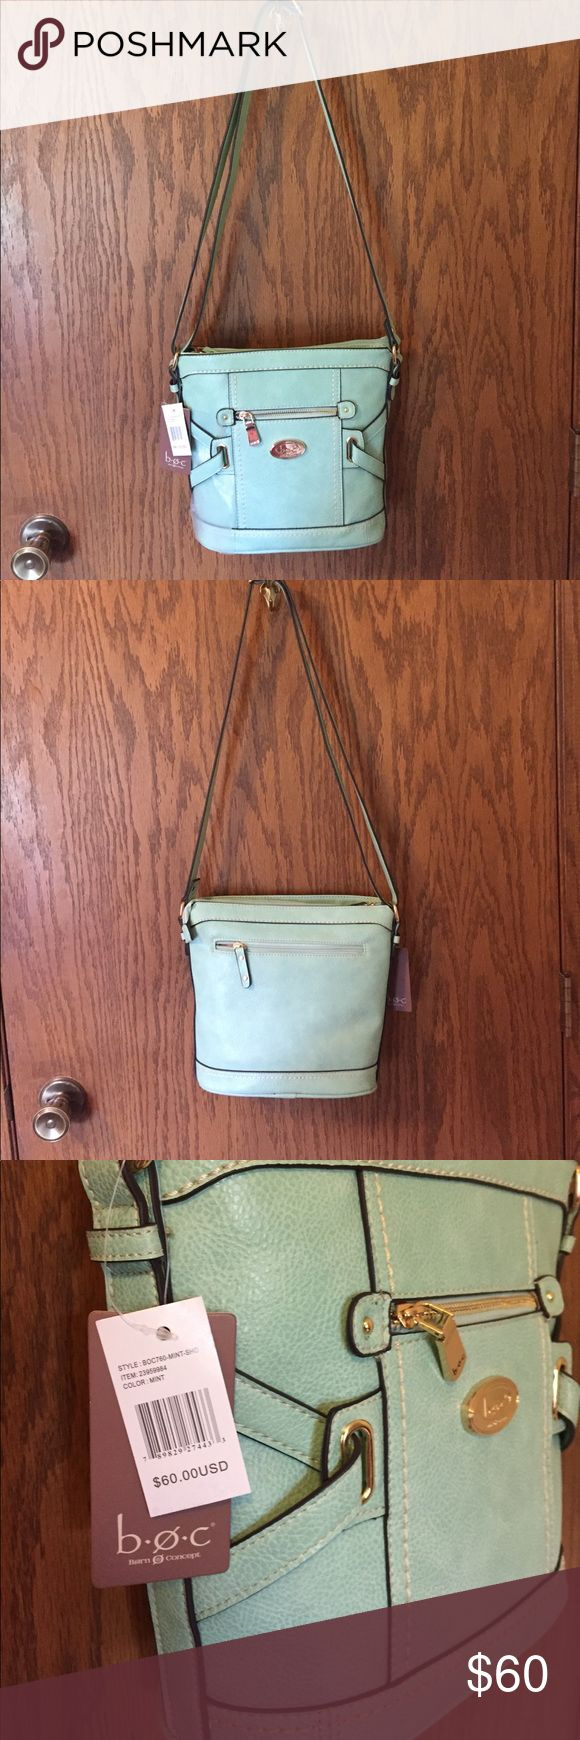 NWT b.o.c. SHOULDER BAG Newest purse listed.  This fun mint purse has adjustable straps, gold hardware, zippered outside pocket, divider, zippered inside pocket and two open pockets for cell phone, keys etc... b.o.c. Bags Shoulder Bags